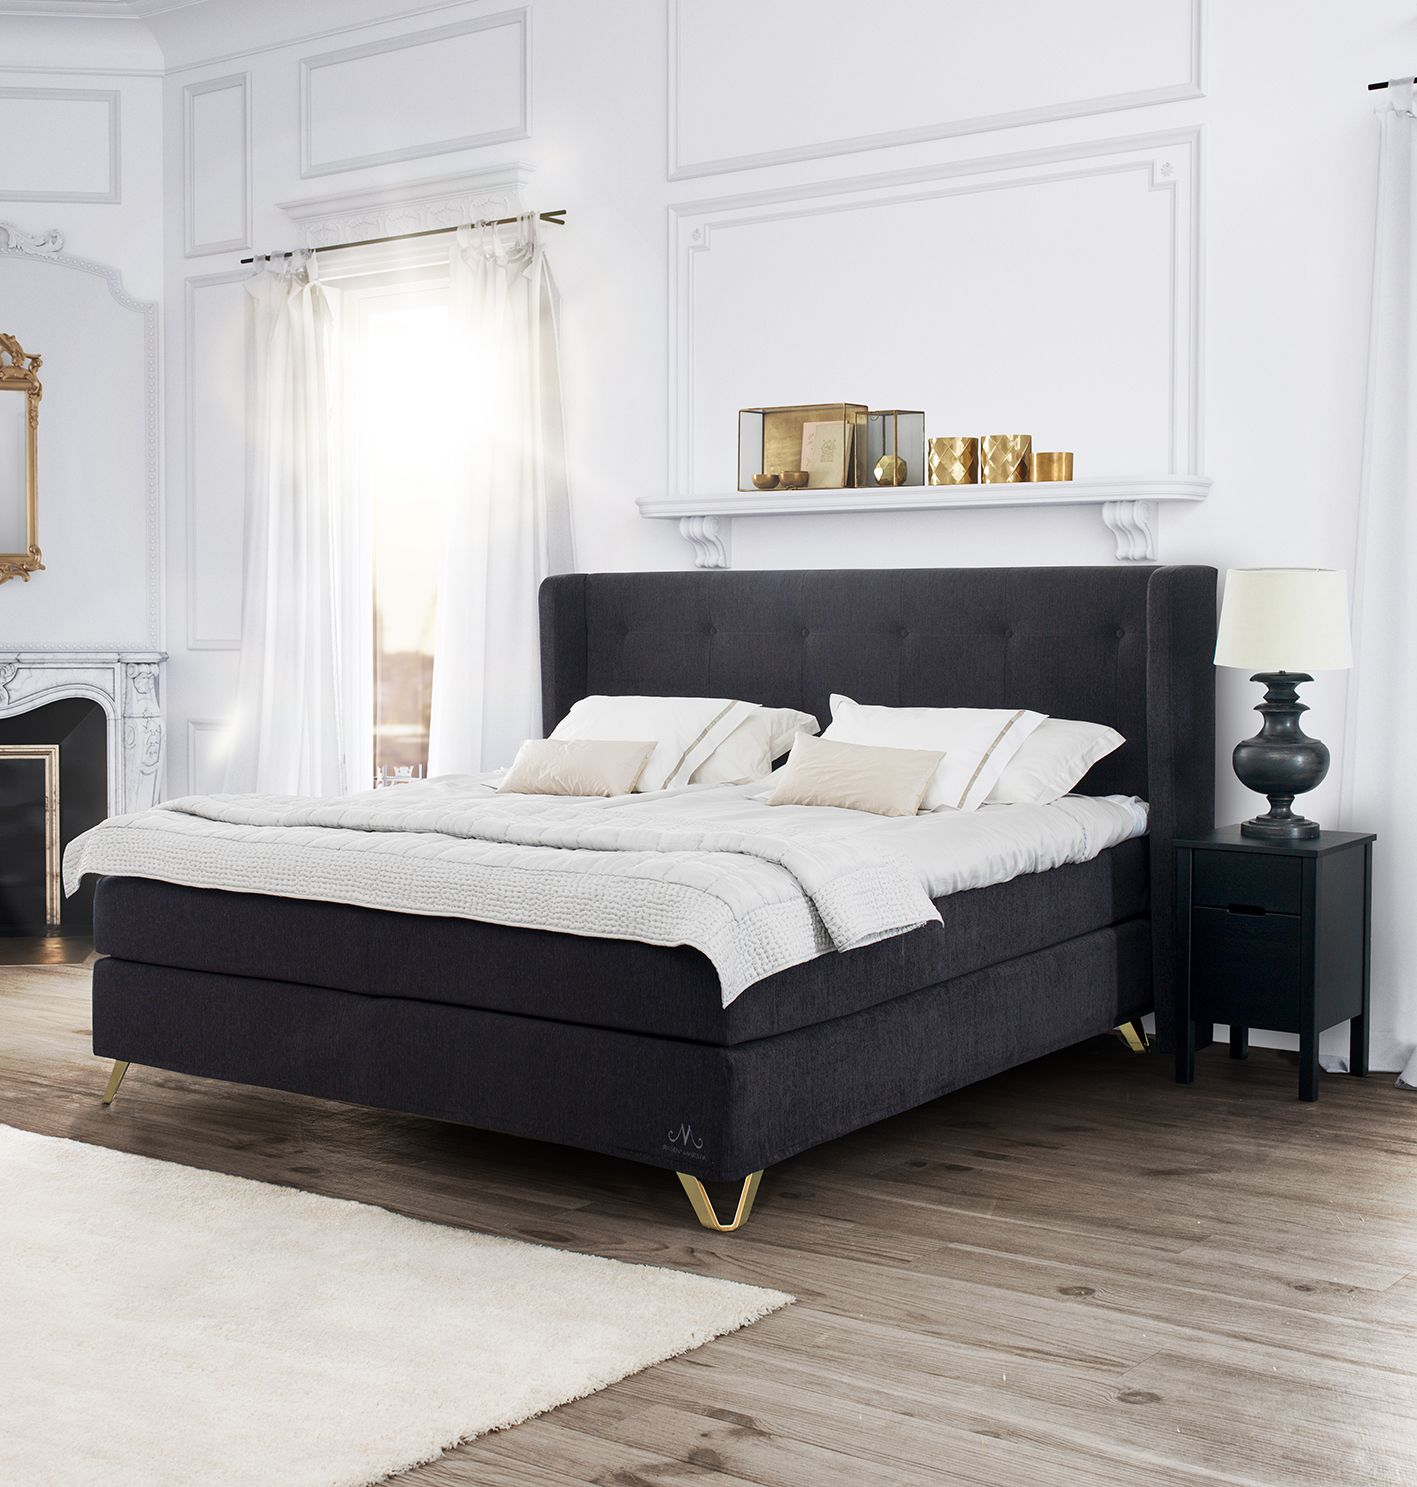 Jensen Majestic Continental Bed Set Pure Perfection Balance And